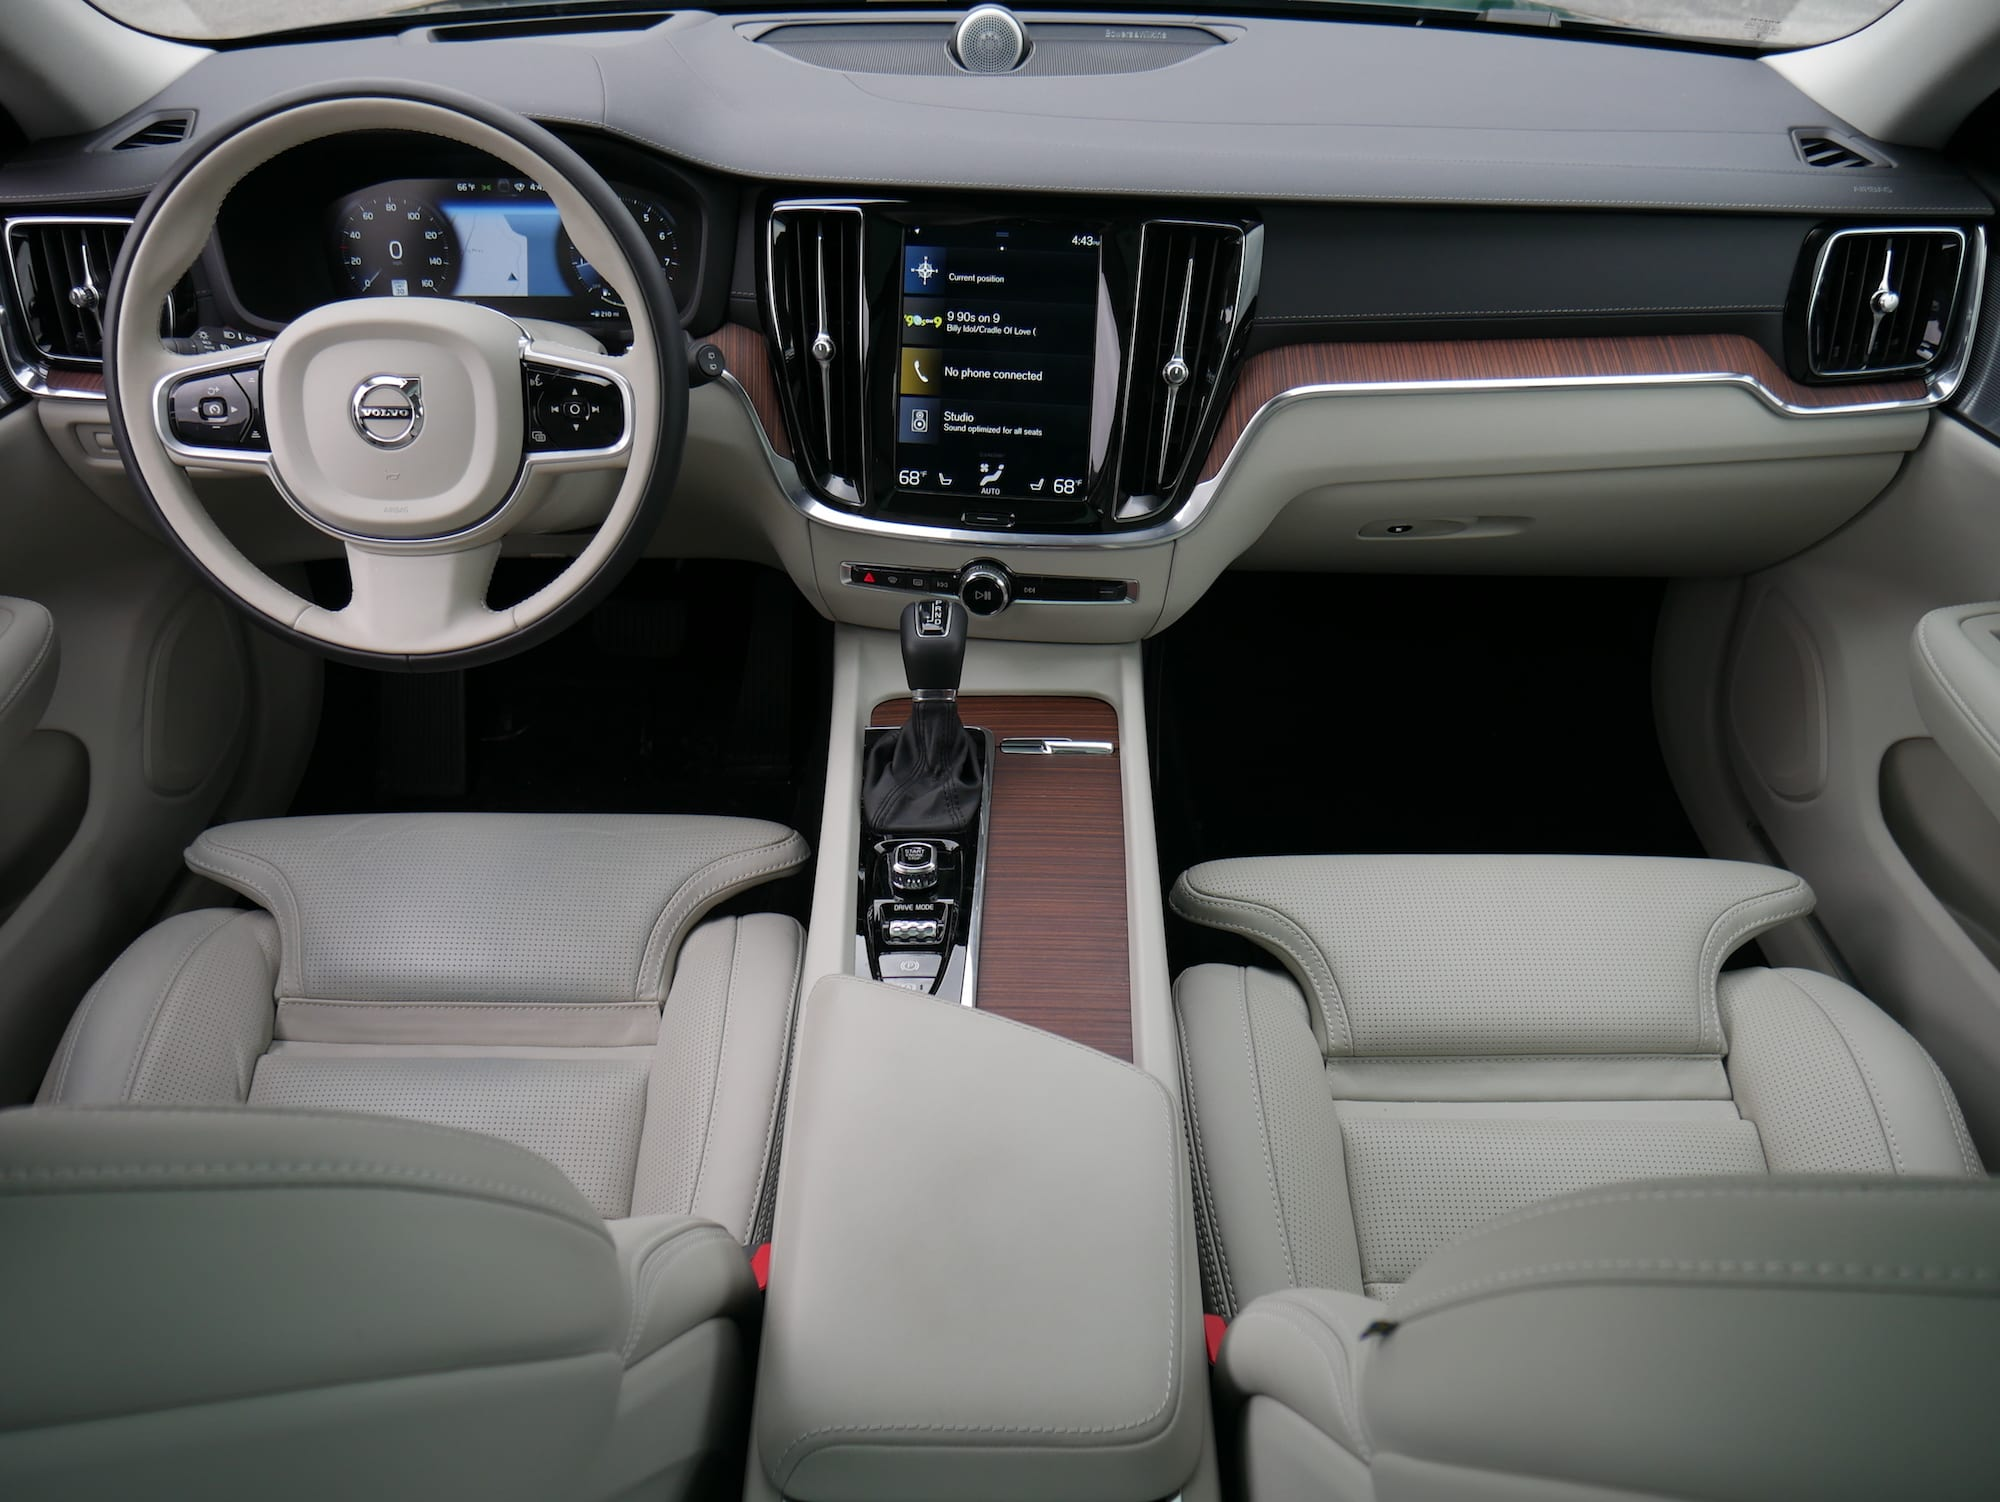 2019 Volvo V60 T6 Inscription cabin view from the back seat